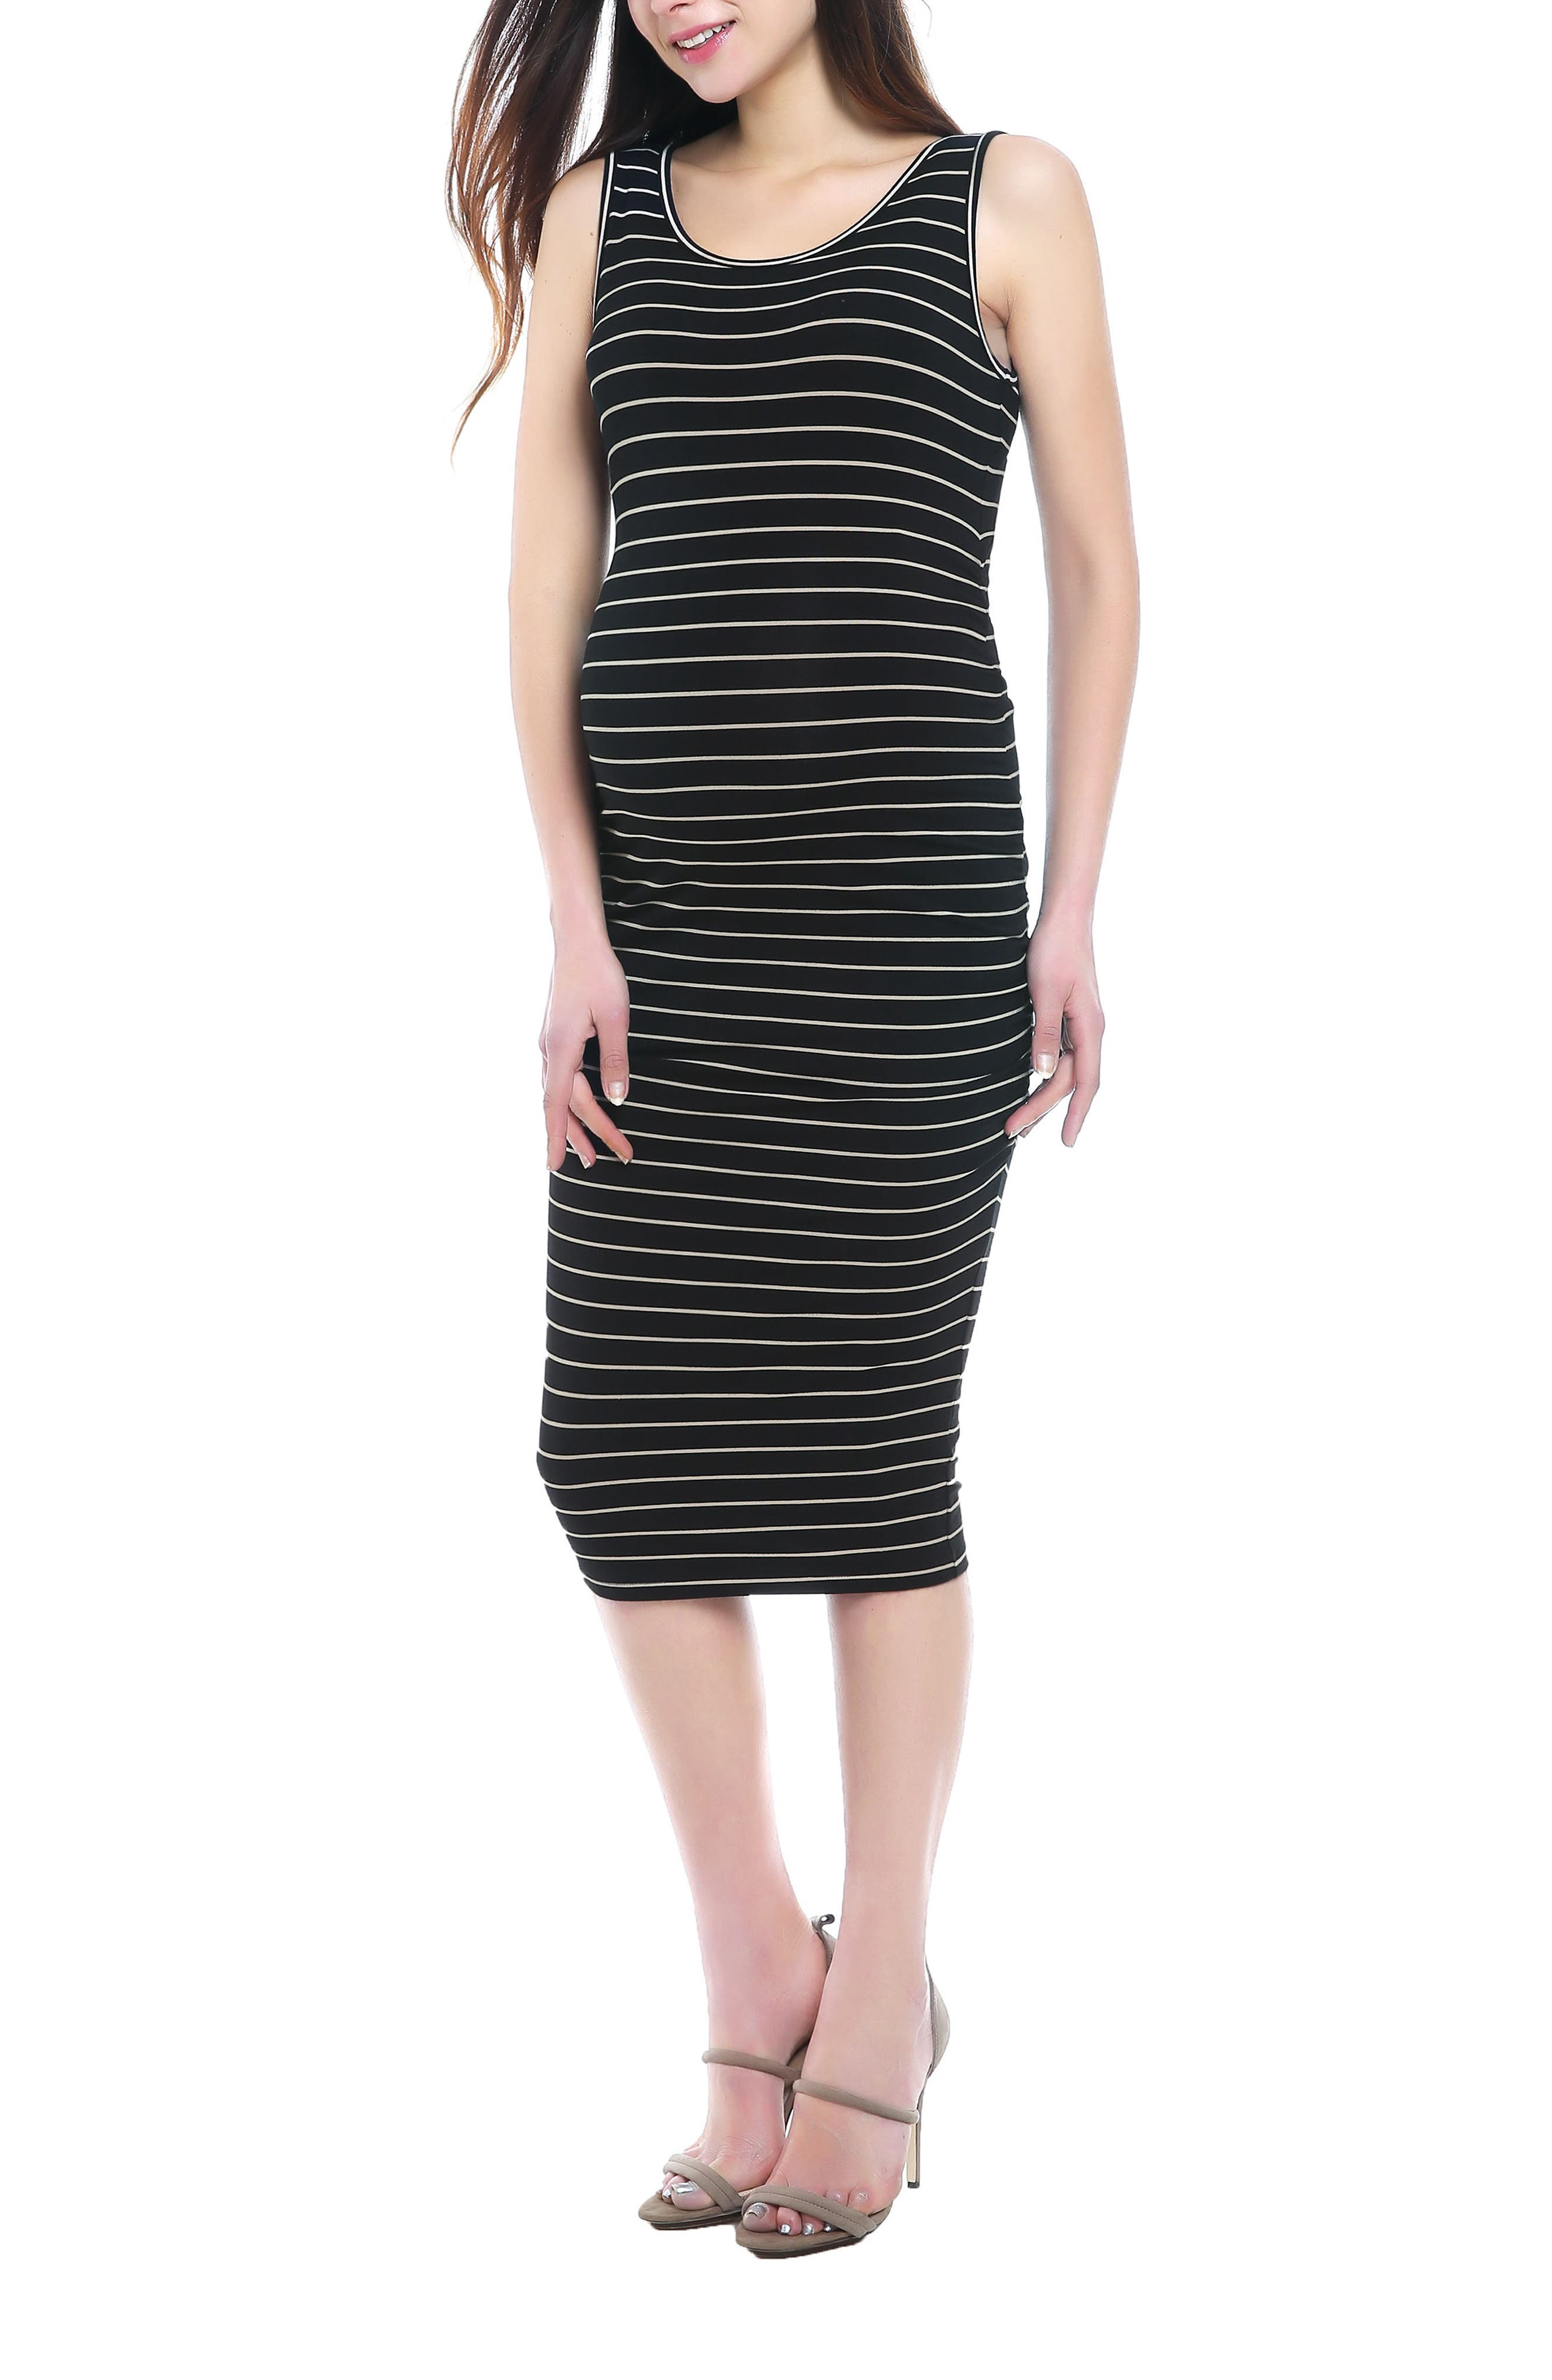 Tobi Stripe Maternity Dress,                             Alternate thumbnail 5, color,                             BLACK/ BEIGE